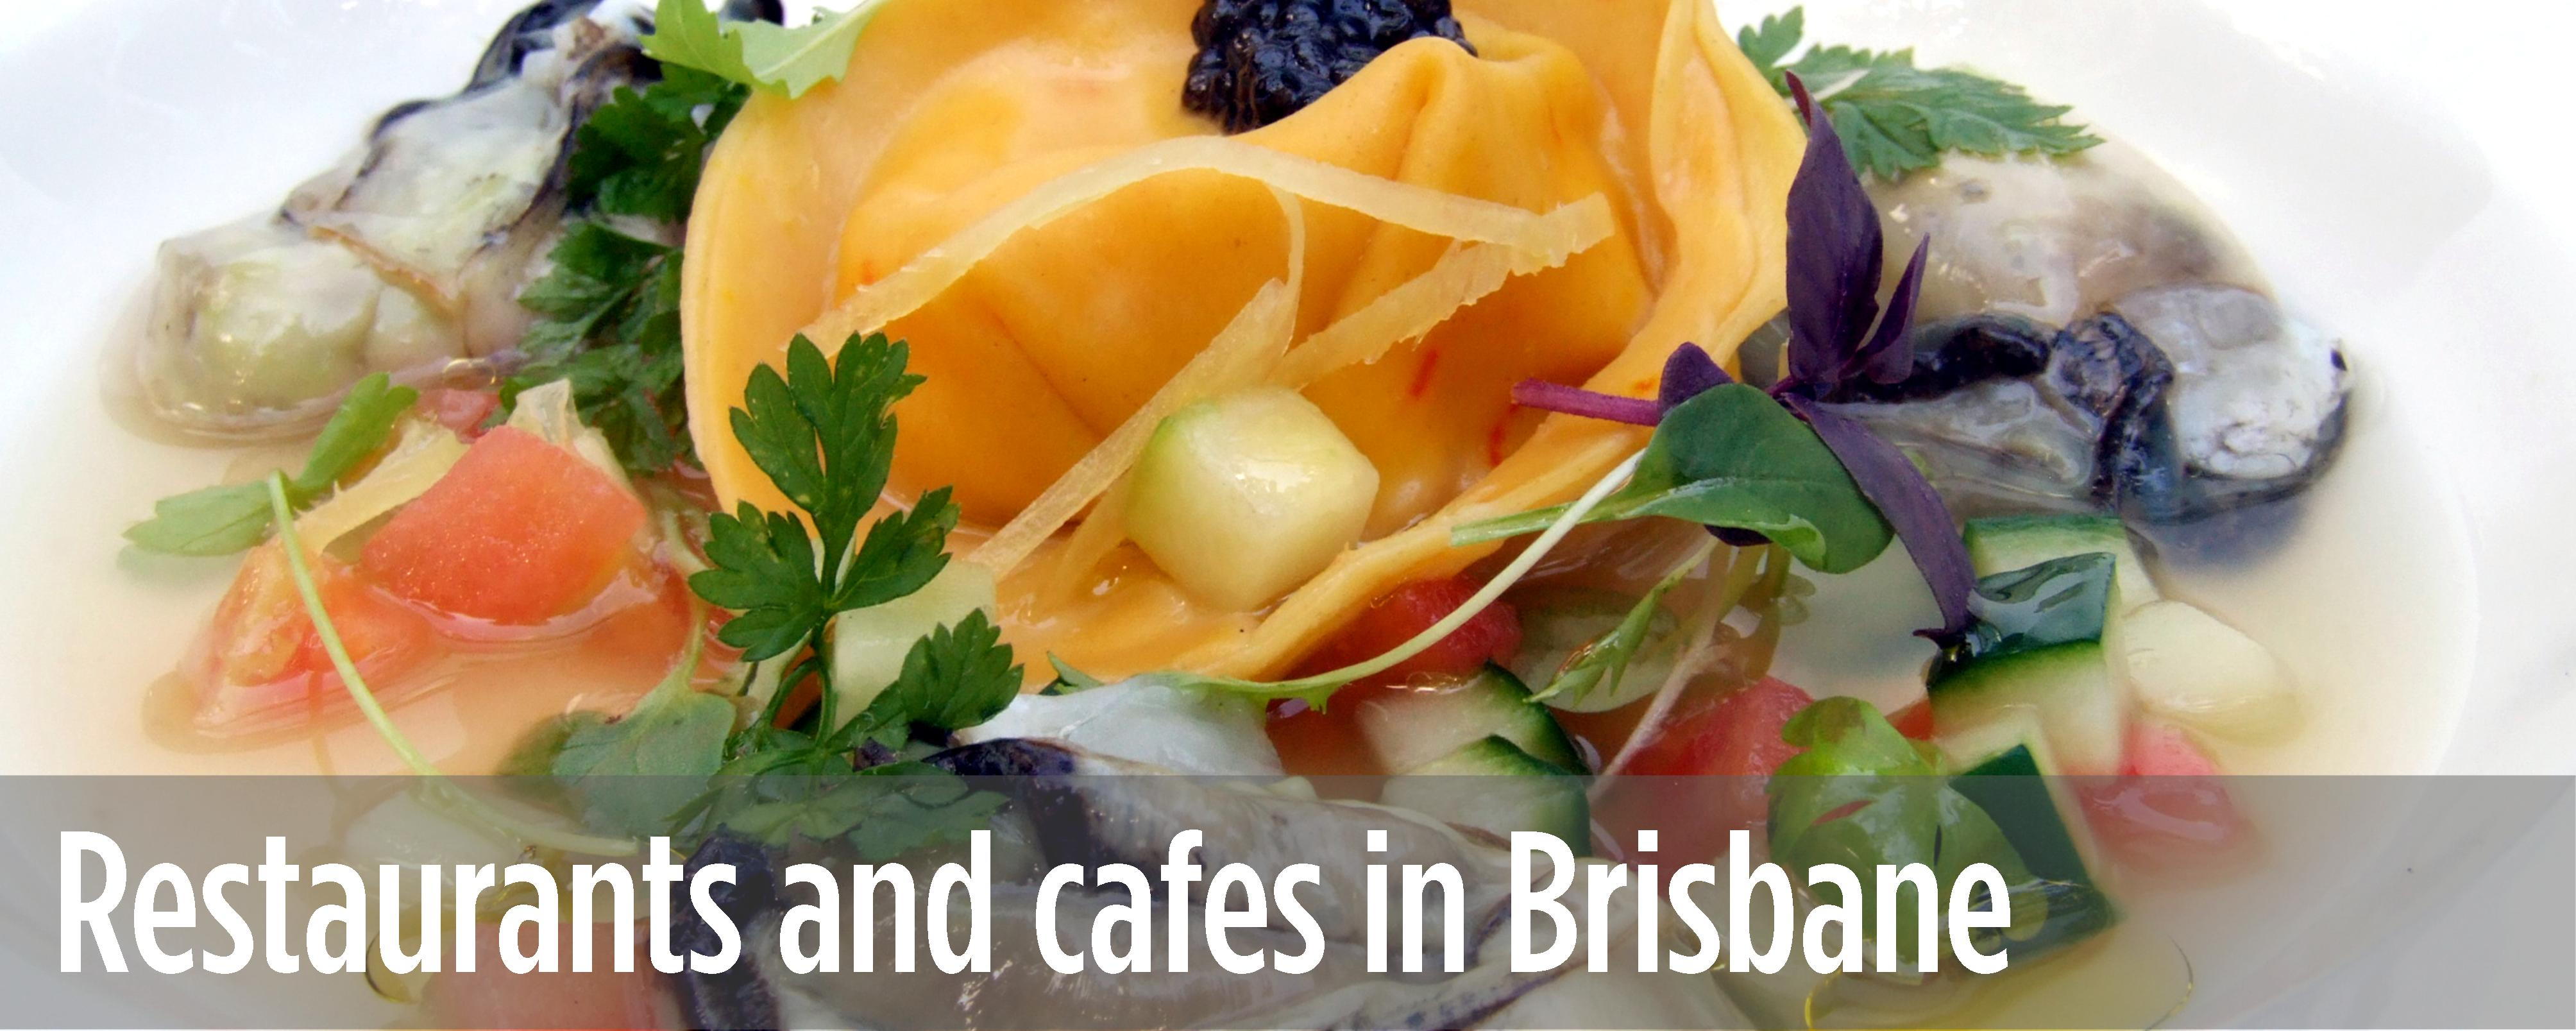 Brisbane Restaurant Guide and Directory